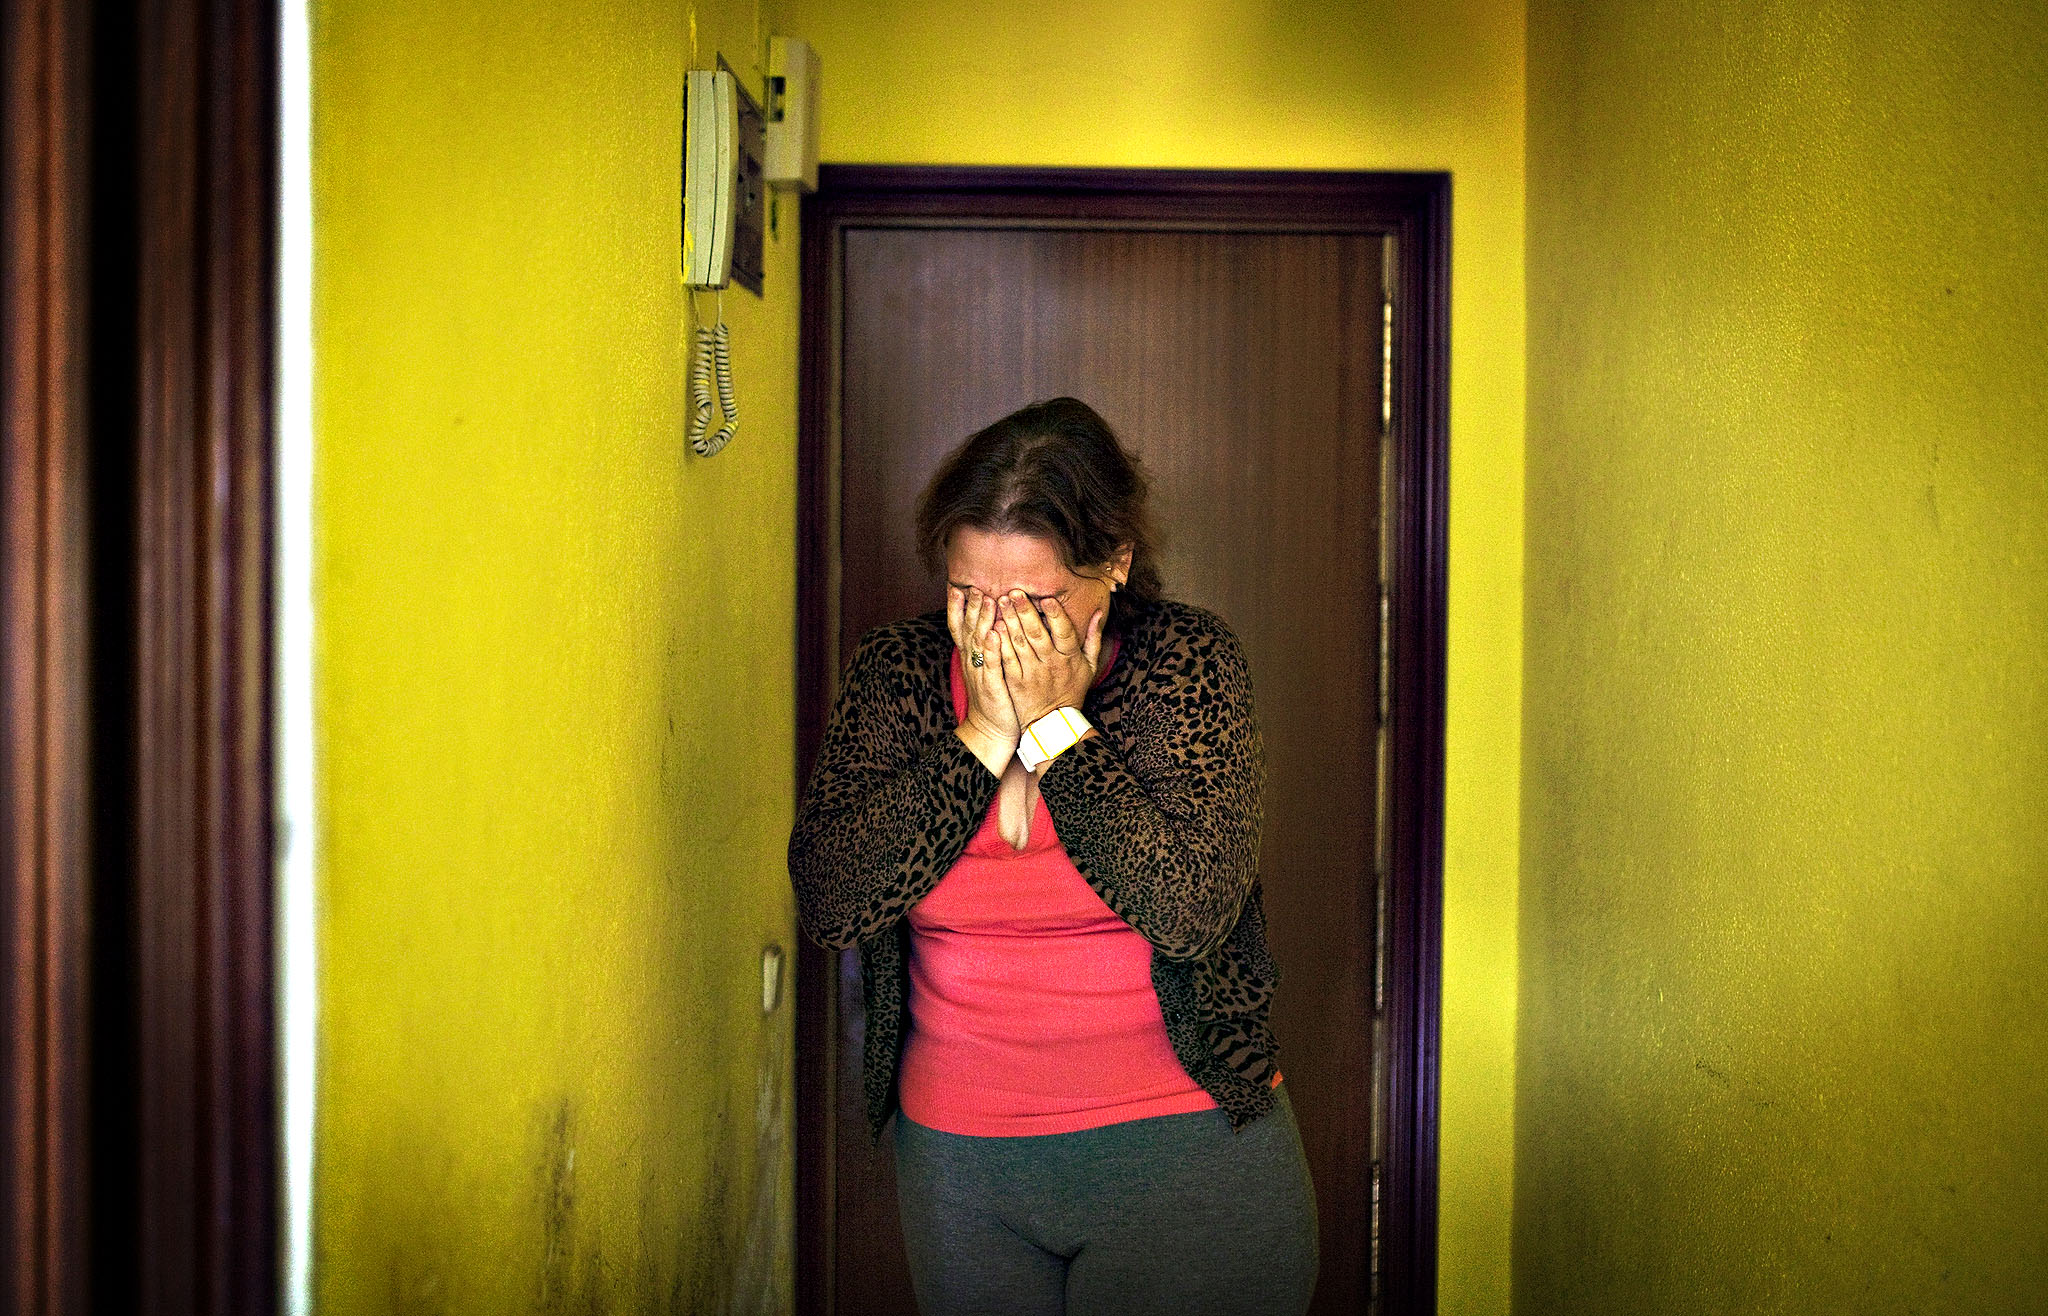 Rocio de las Nieves Reyes Galvez, 28 years old, gestures as she waits to get evicted in Madrid, Spain, Wednesday. Reyes Galvez moved into a room of a foreclosed apartment owned by her friend with her 6-year-old daughter six months ago making small payments as she could afford. The landlord's loss of the apartment to Bankia bank is causing Reyes Galvez's eviction. Reyes Galvez has a disability produced by heart problems that prevents her from having a formal job. Three months ago she received her last pay-check, a state benefit payment of 426 euros. The eviction was finally postponed till Nov. 15 with the help of the Victims' Mortgage Platform (PAH).